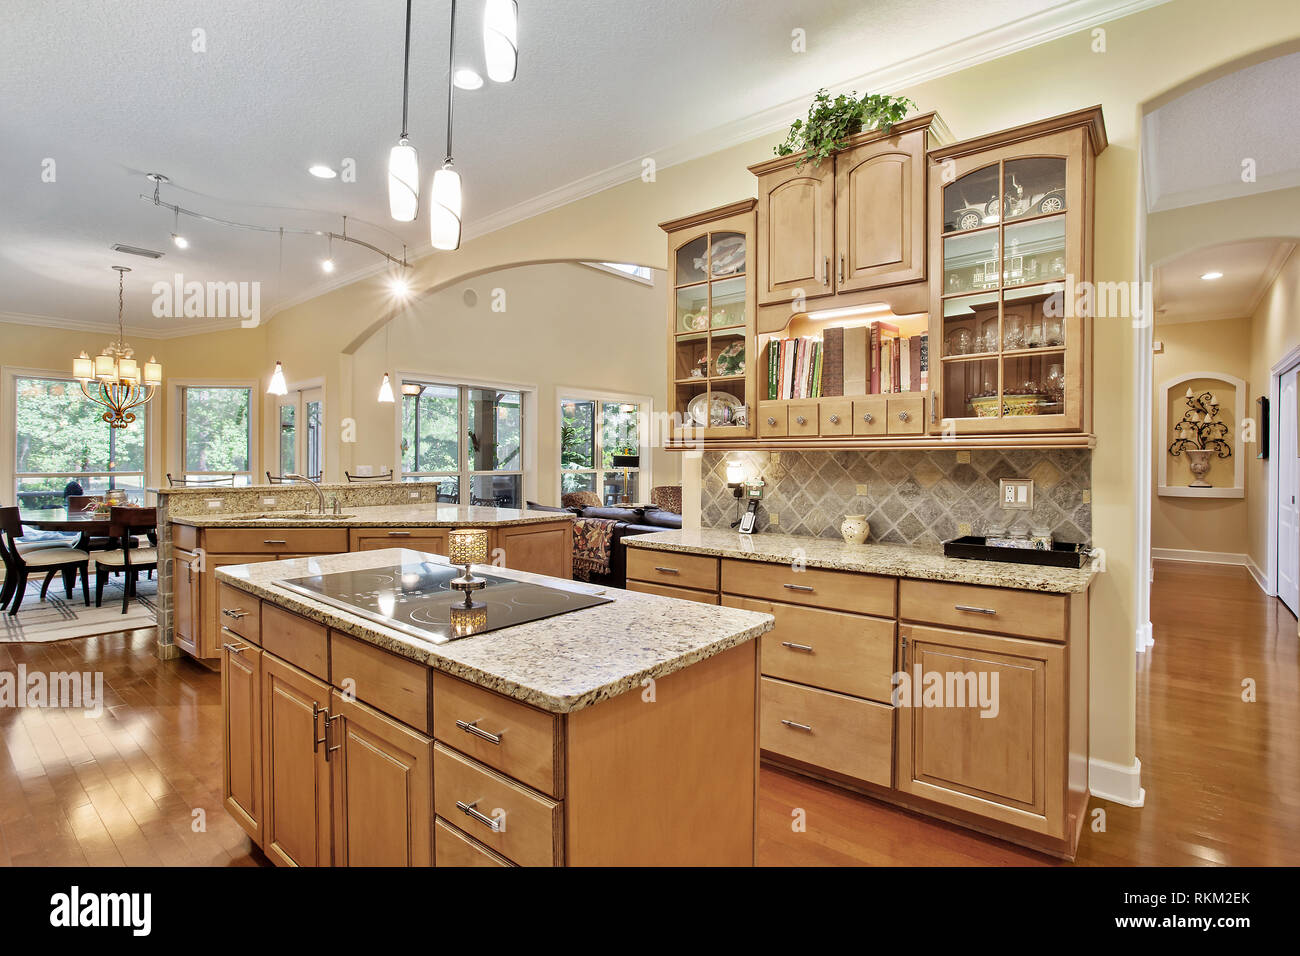 Modern Kitchen Home Interior with Hardwood and Wooden Cabinets ... on ideal playsets, ideal wood flooring, ideal vacuum, ideal cast iron stove, ideal home care, ideal chemical, ideal garden, ideal design, ideal tile, ideal wood stoves, ideal toys, ideal beauty, ideal funeral, ideal hand tools, ideal backyard landscaping, ideal kitchen, ideal boiler, ideal mattress, ideal office,